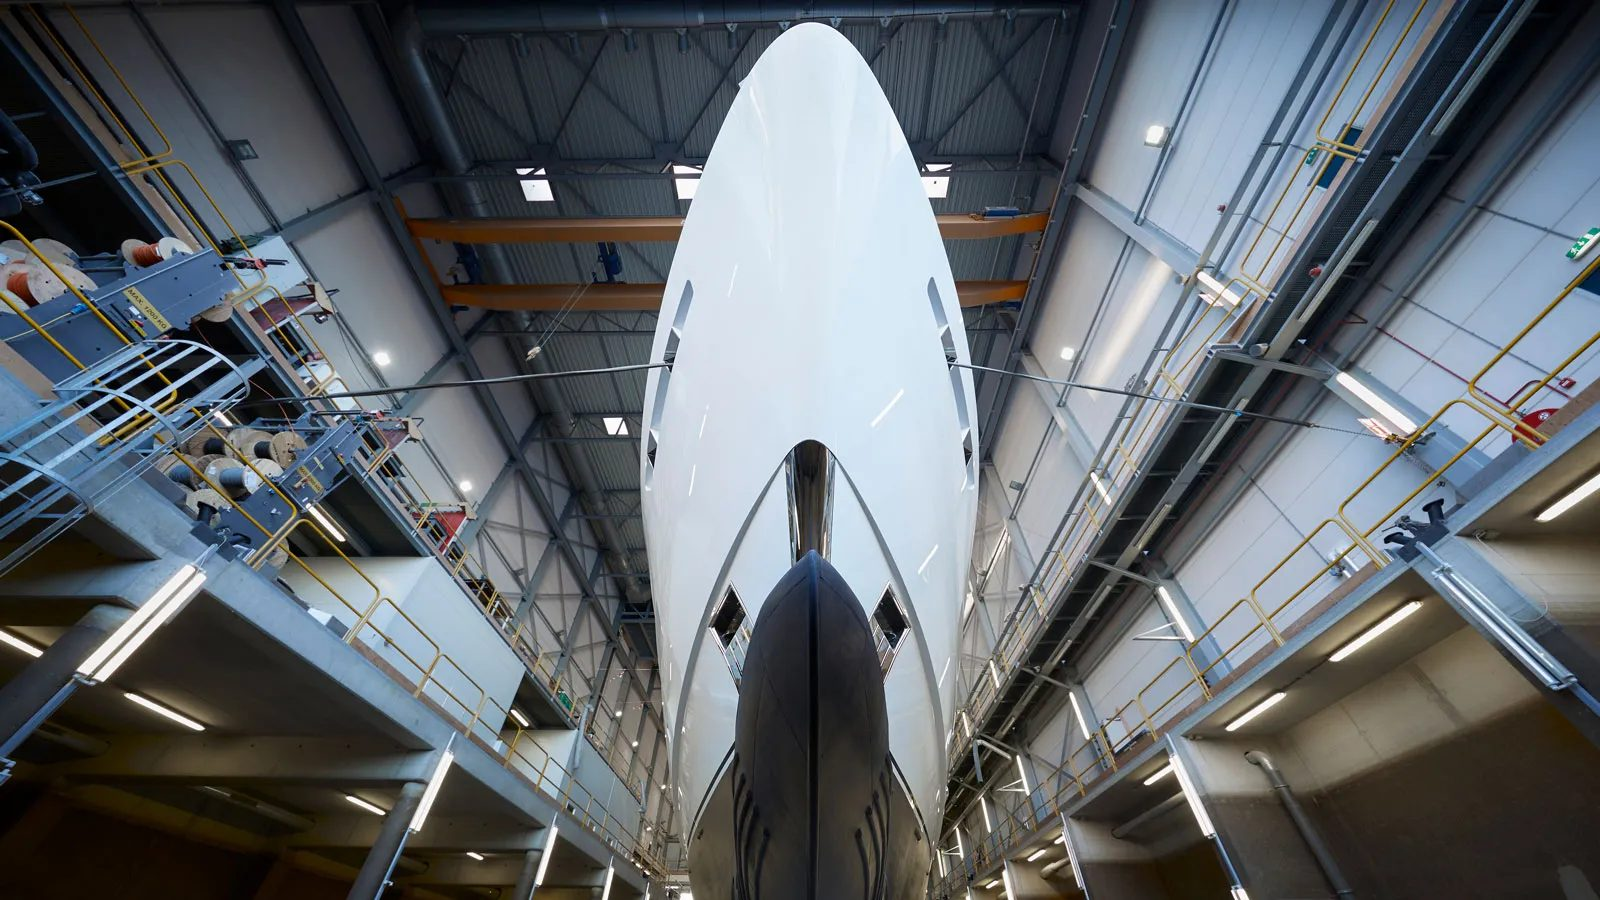 Superiate Heesen Pollux - boat shopping